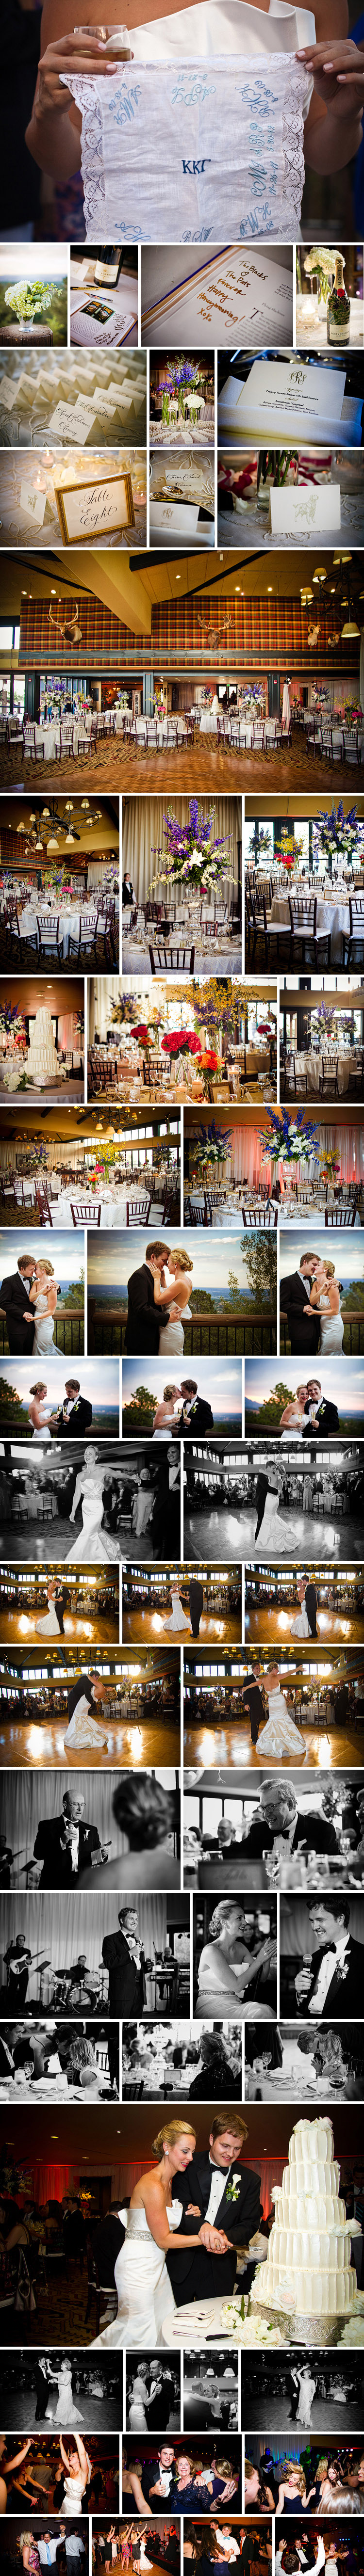 broadmoor-cheyenne-lodge-wedding-05